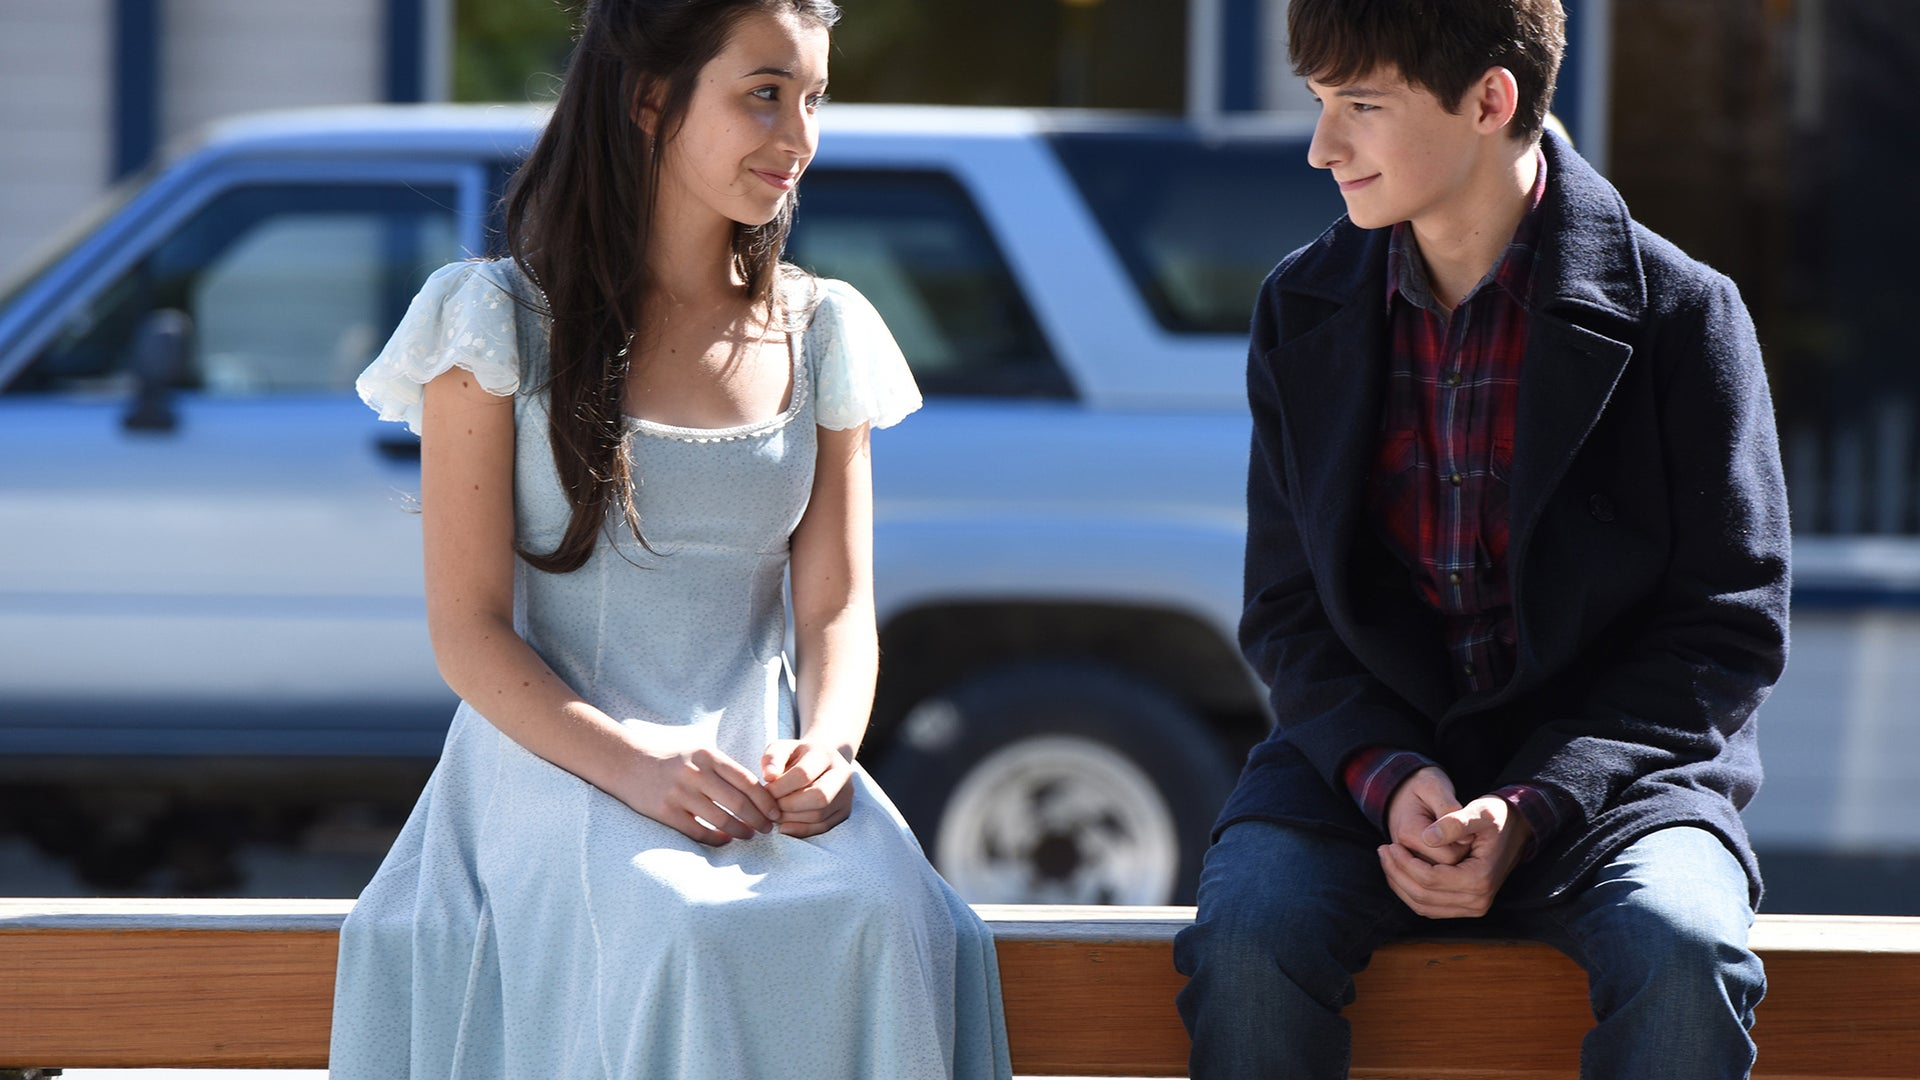 Olivia Steele-Falconer and Jared Gilmore, Once Upon a Time